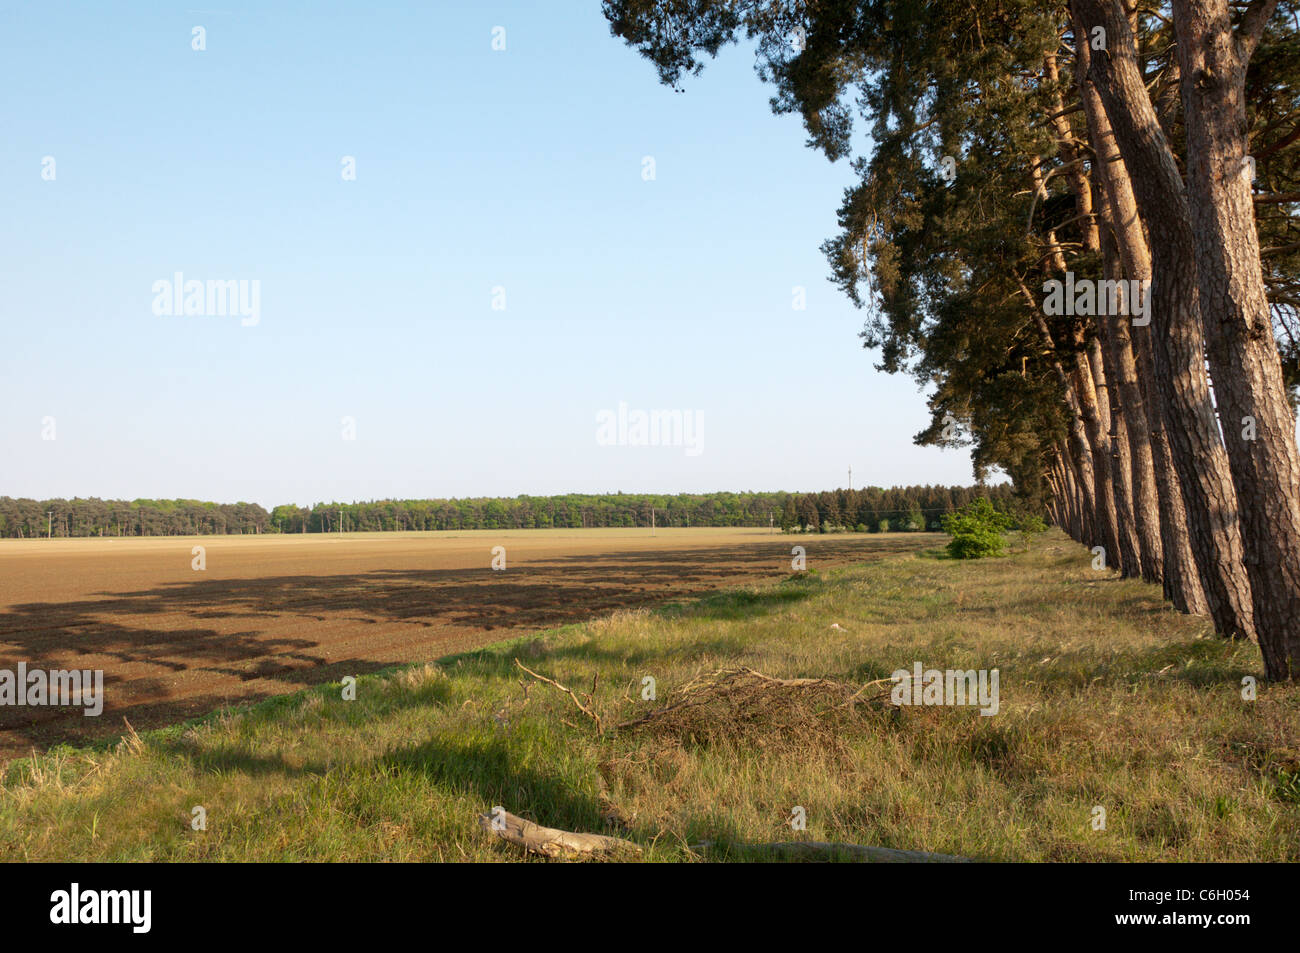 Typical Breckland scenery in Thetford Forest, Suffolk. - Stock Image